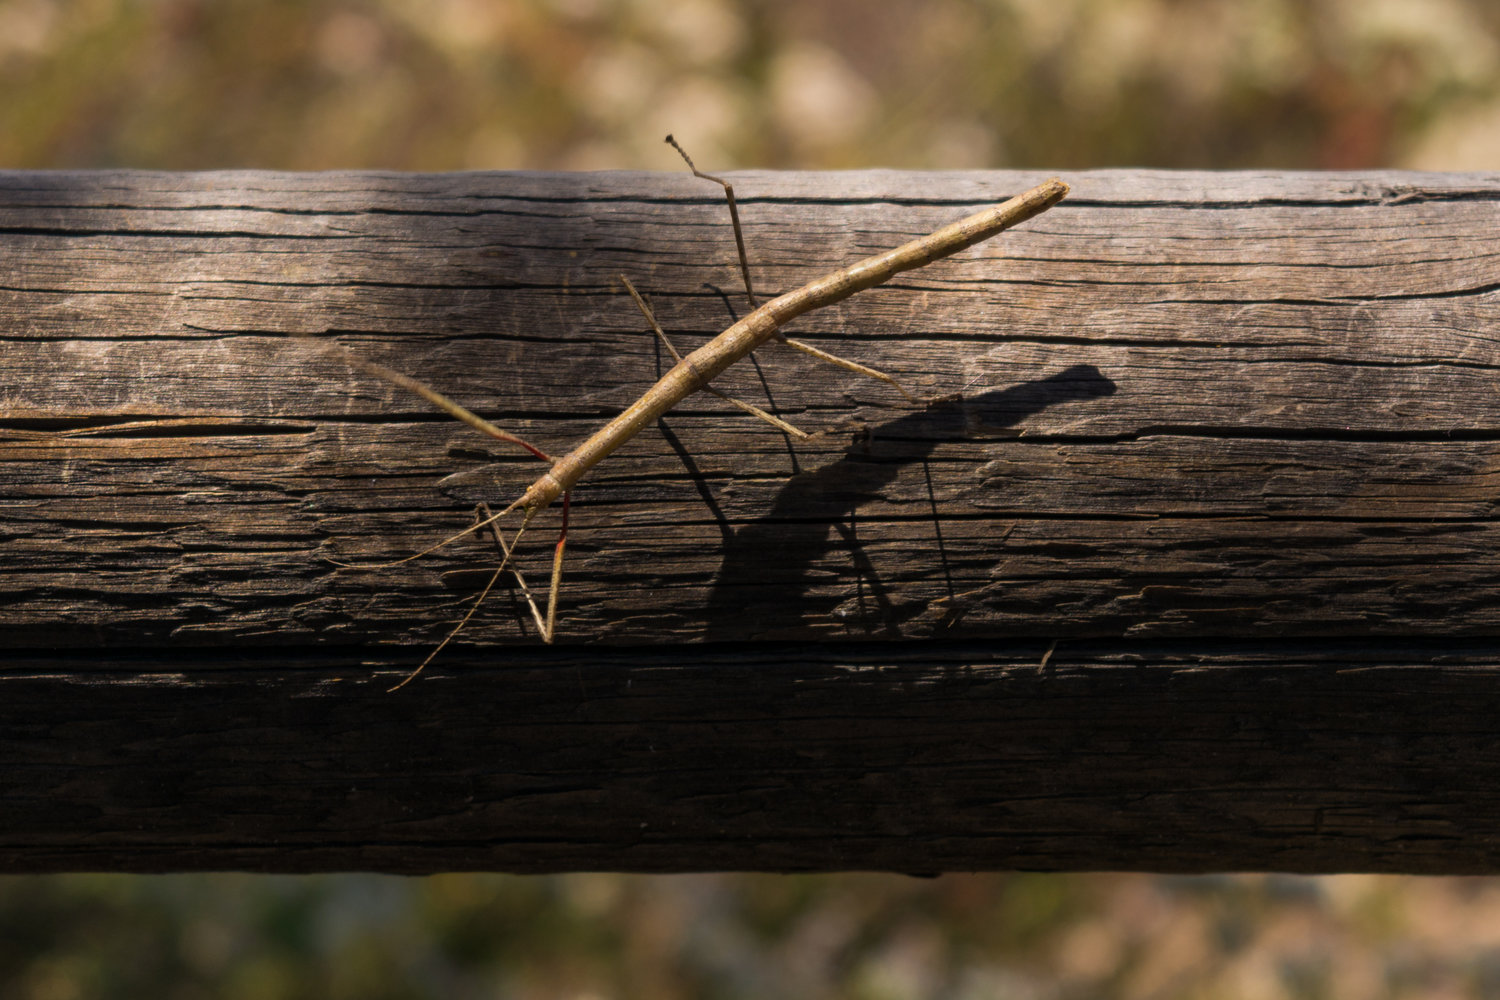 Walk on the wild side with our November Ambassador - Walking sticks are super neat animals - learn more about them!